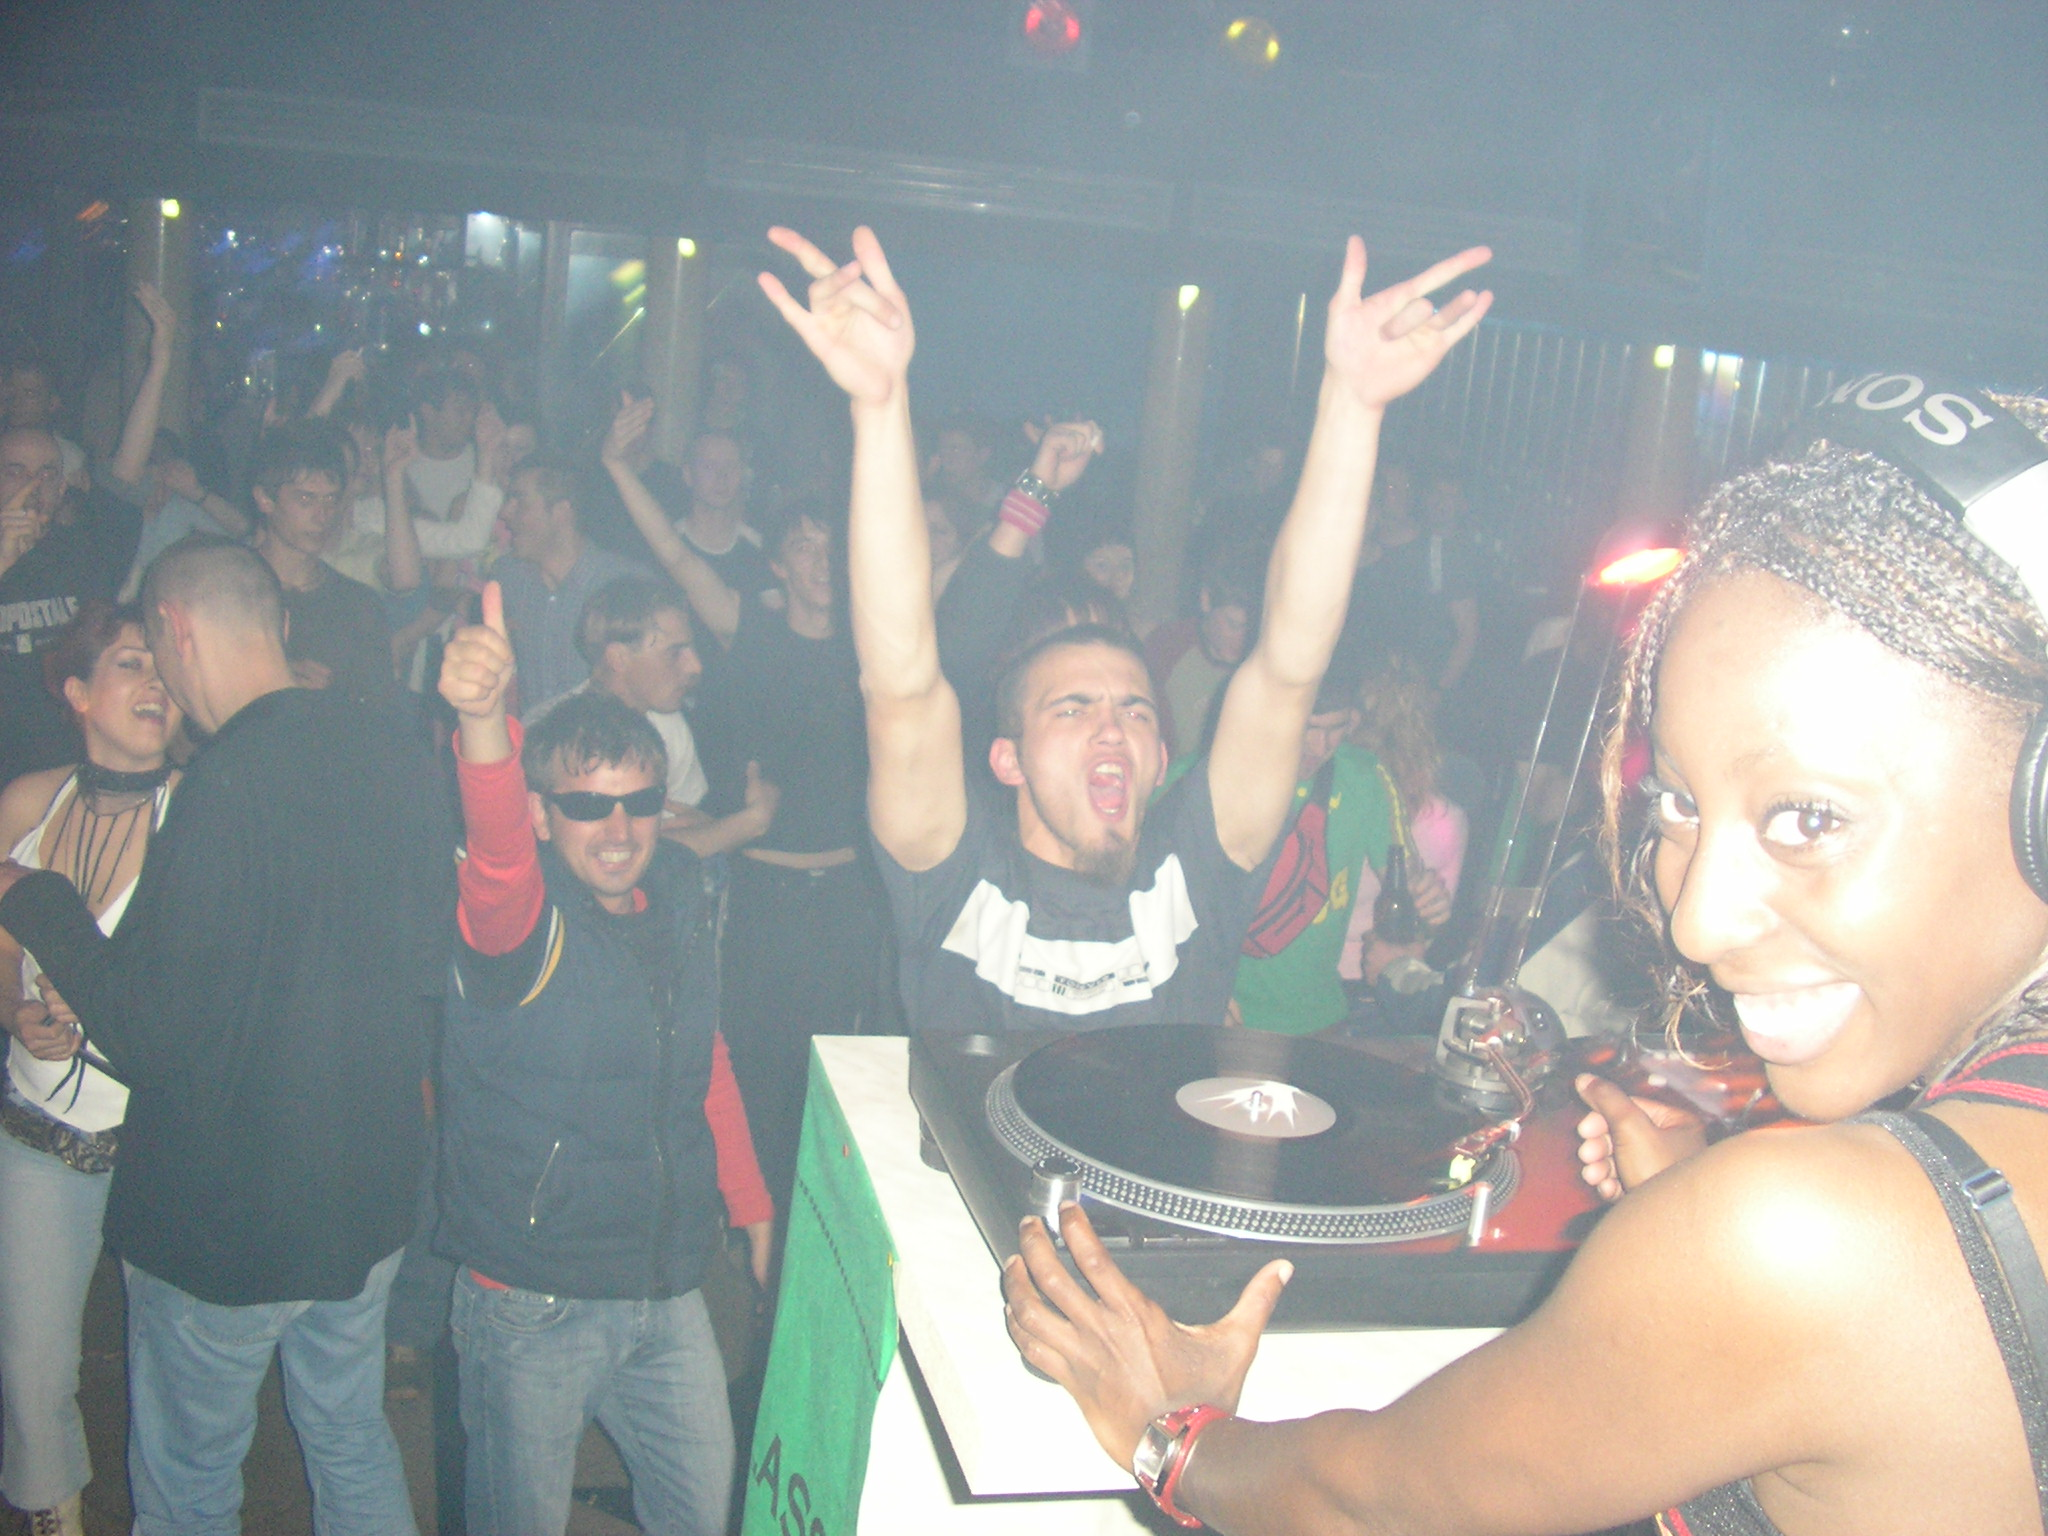 Candice @ Club Extravaganza, Croatia